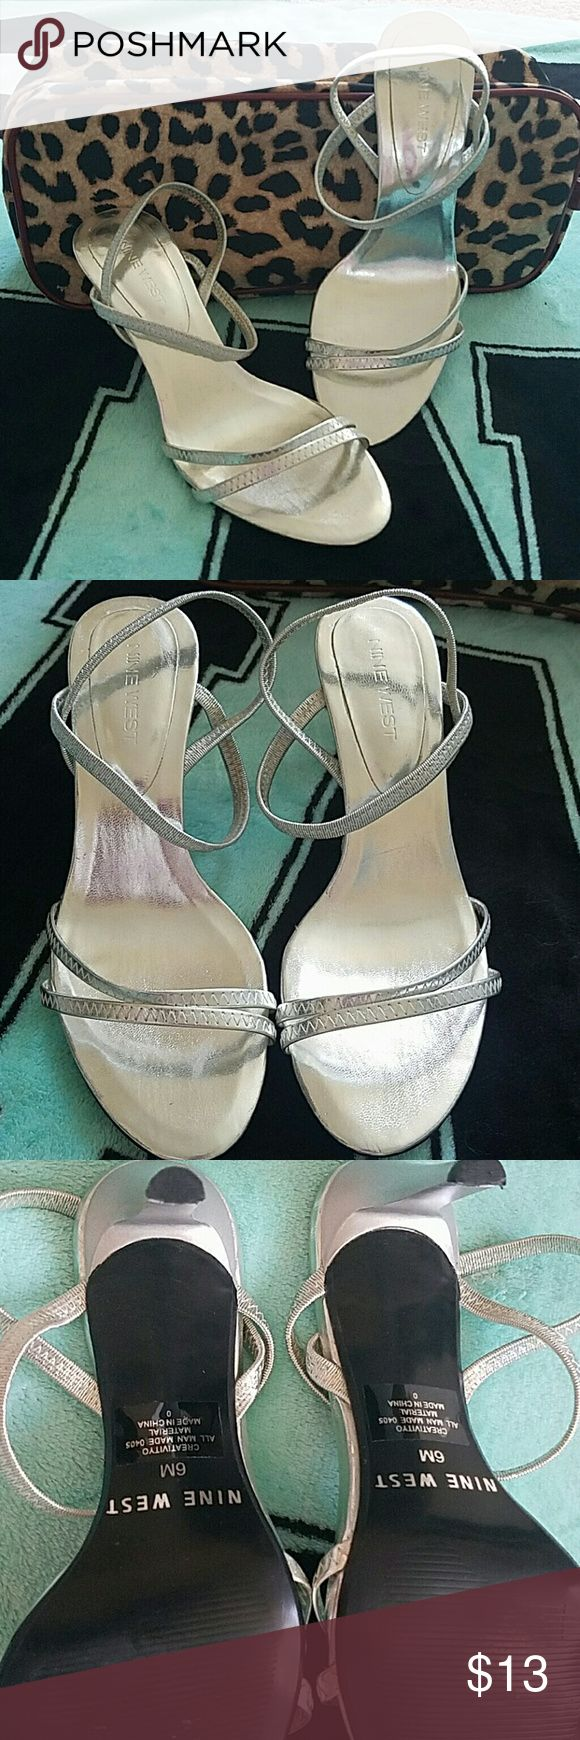 Nine West strappy heel Cute silver metallic strappy heel, worn once, no signs of wear, 3 inch heel, excellent condition Nine West Shoes Heels